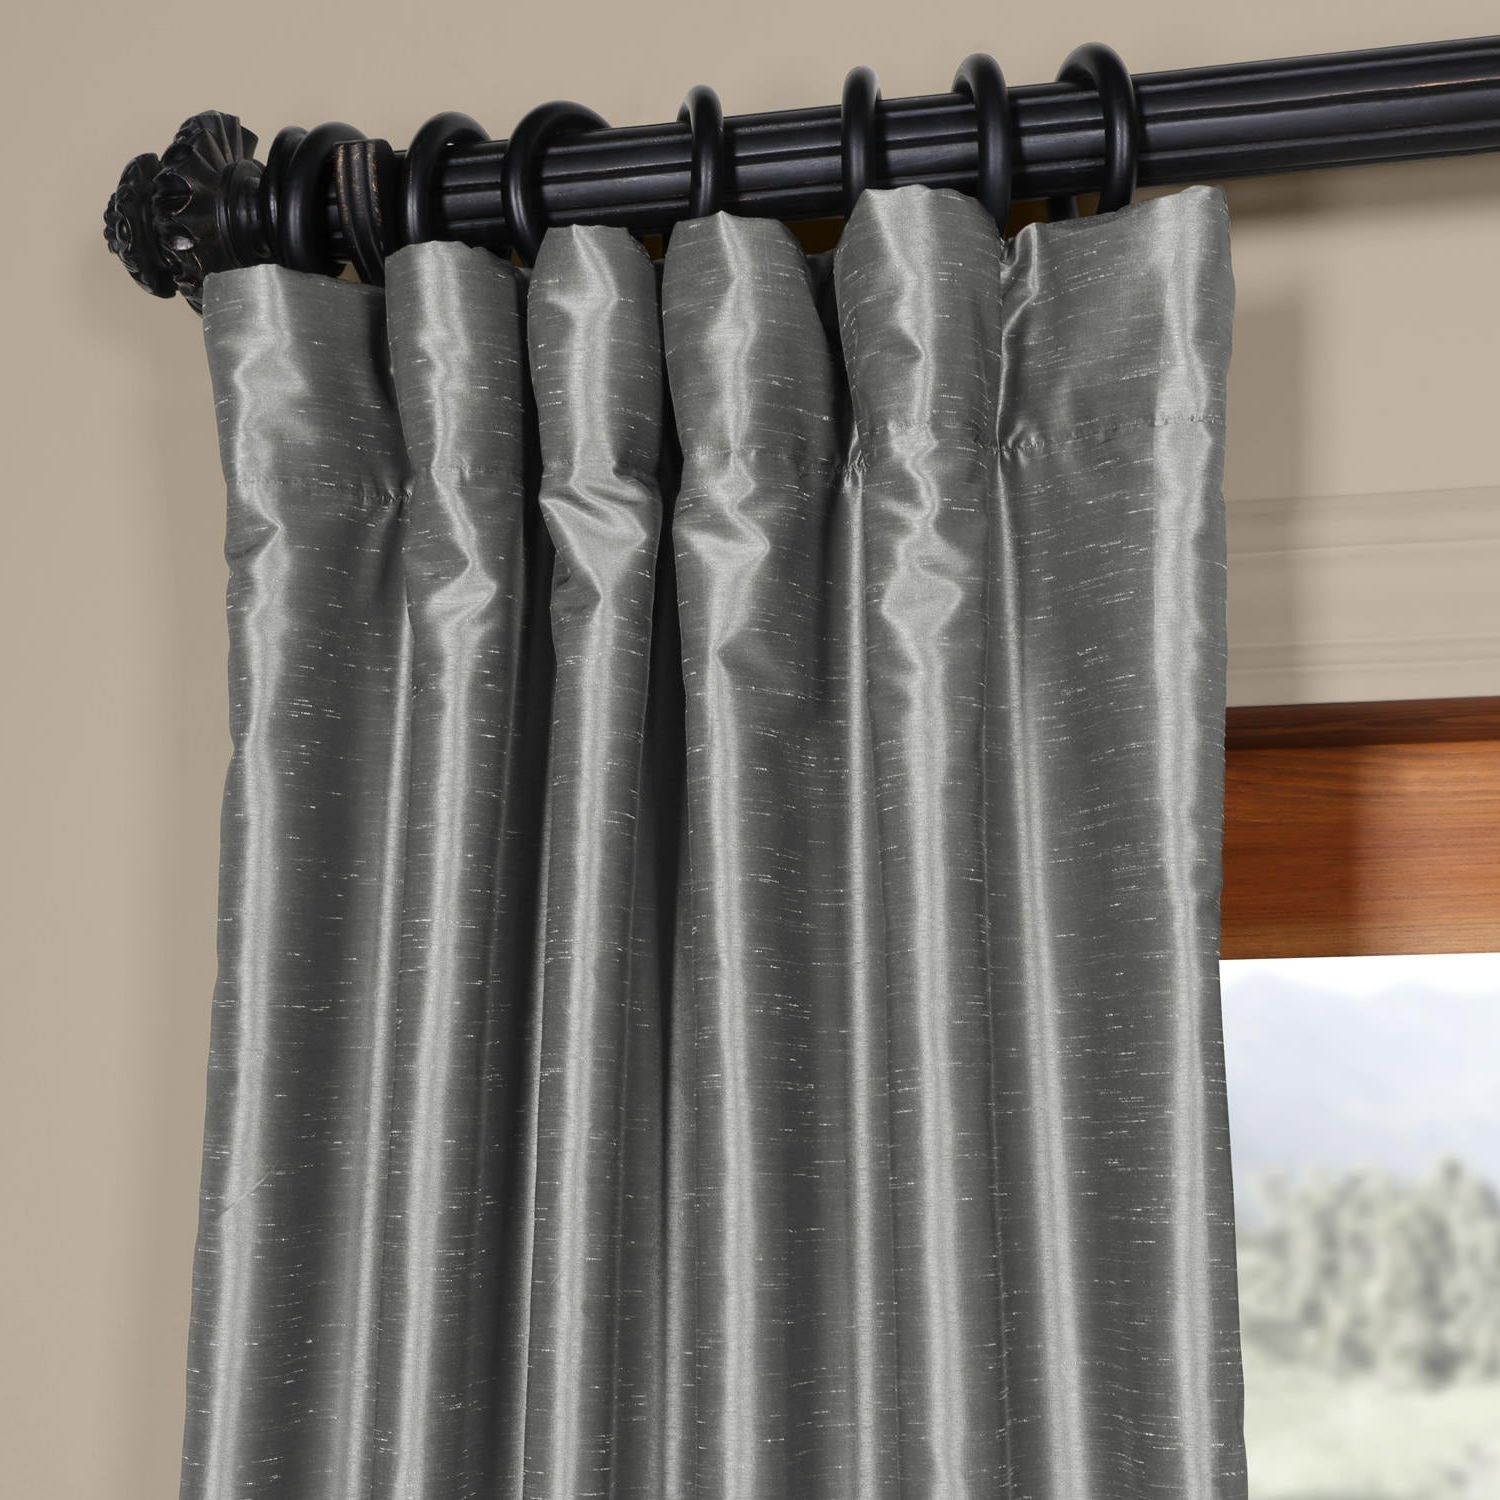 Storm Grey Vintage Faux Textured Dupioni Single Silk Curtain Panels With Best And Newest Exclusive Fabrics Storm Grey Vintage Faux Textured Dupioni Single Silk Curtain Panel (View 7 of 20)